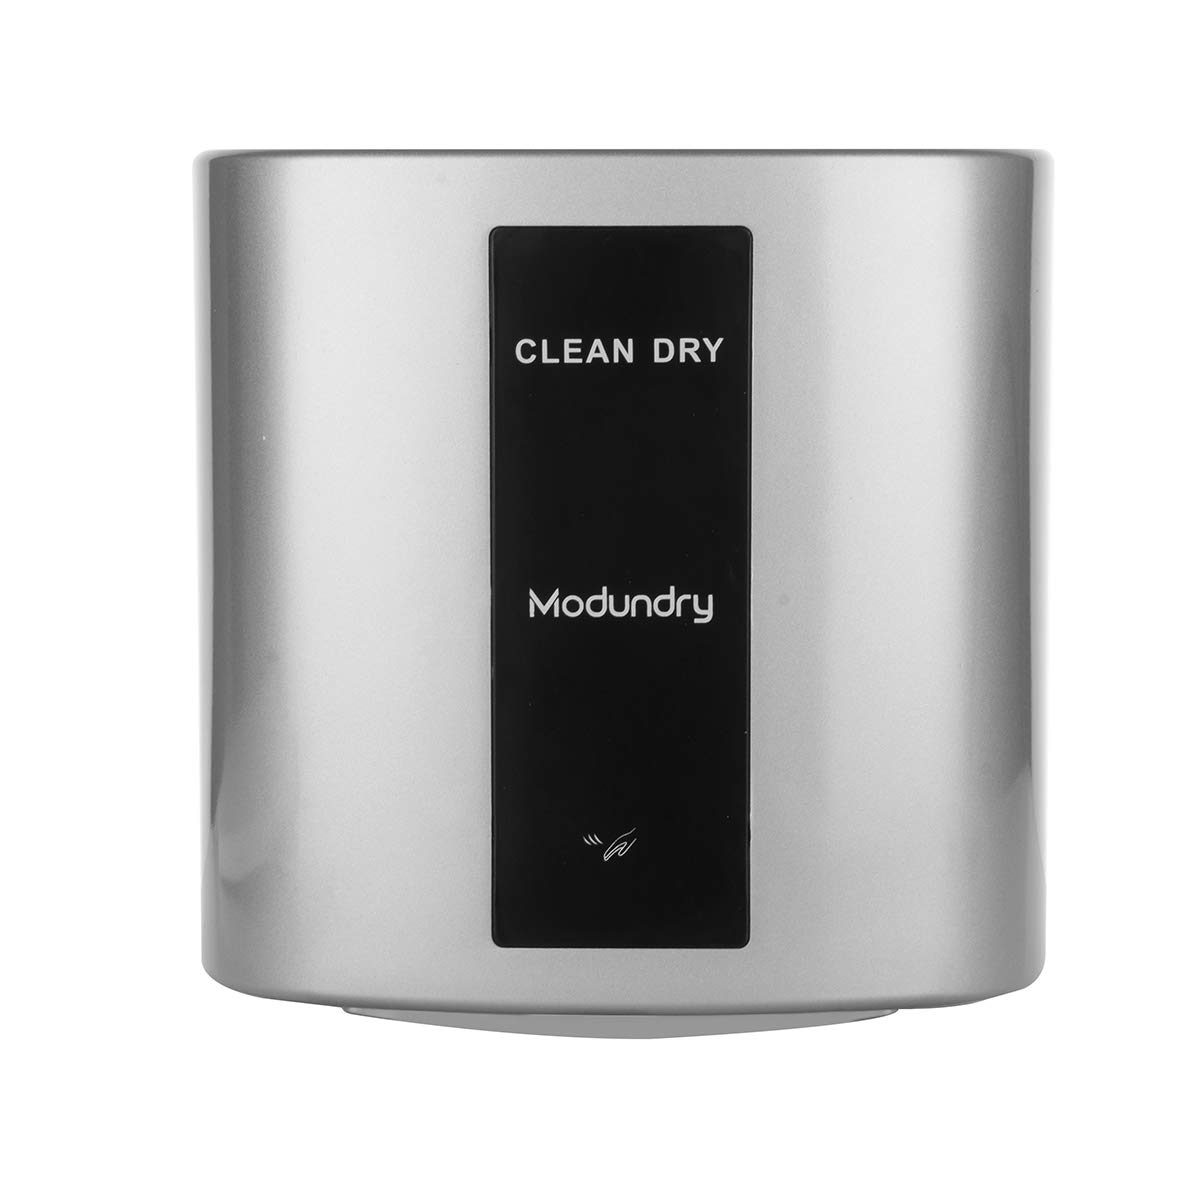 Modundry Hand Dryers for Bathrooms Commercial 1200W -Automatic Infrared Sensor Hand Dryers for restrooms - Noise Reduction, Surface Mounted(Grey) by Modundry